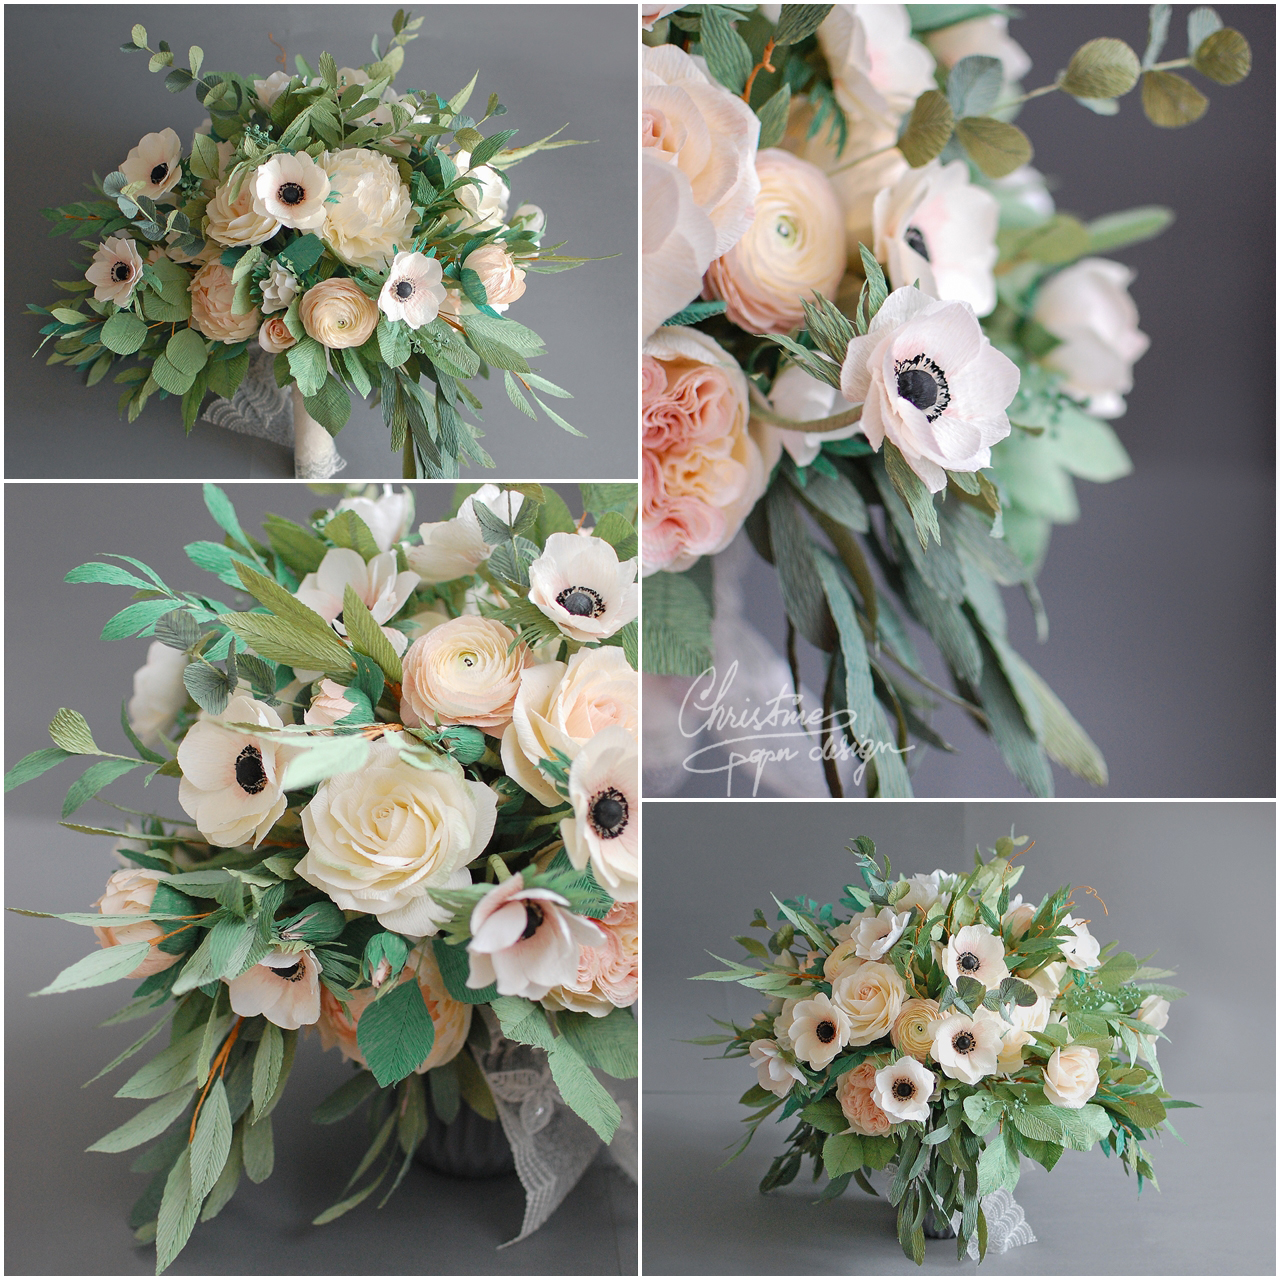 paper flowers bridal bouquet - Christinepaperdesign